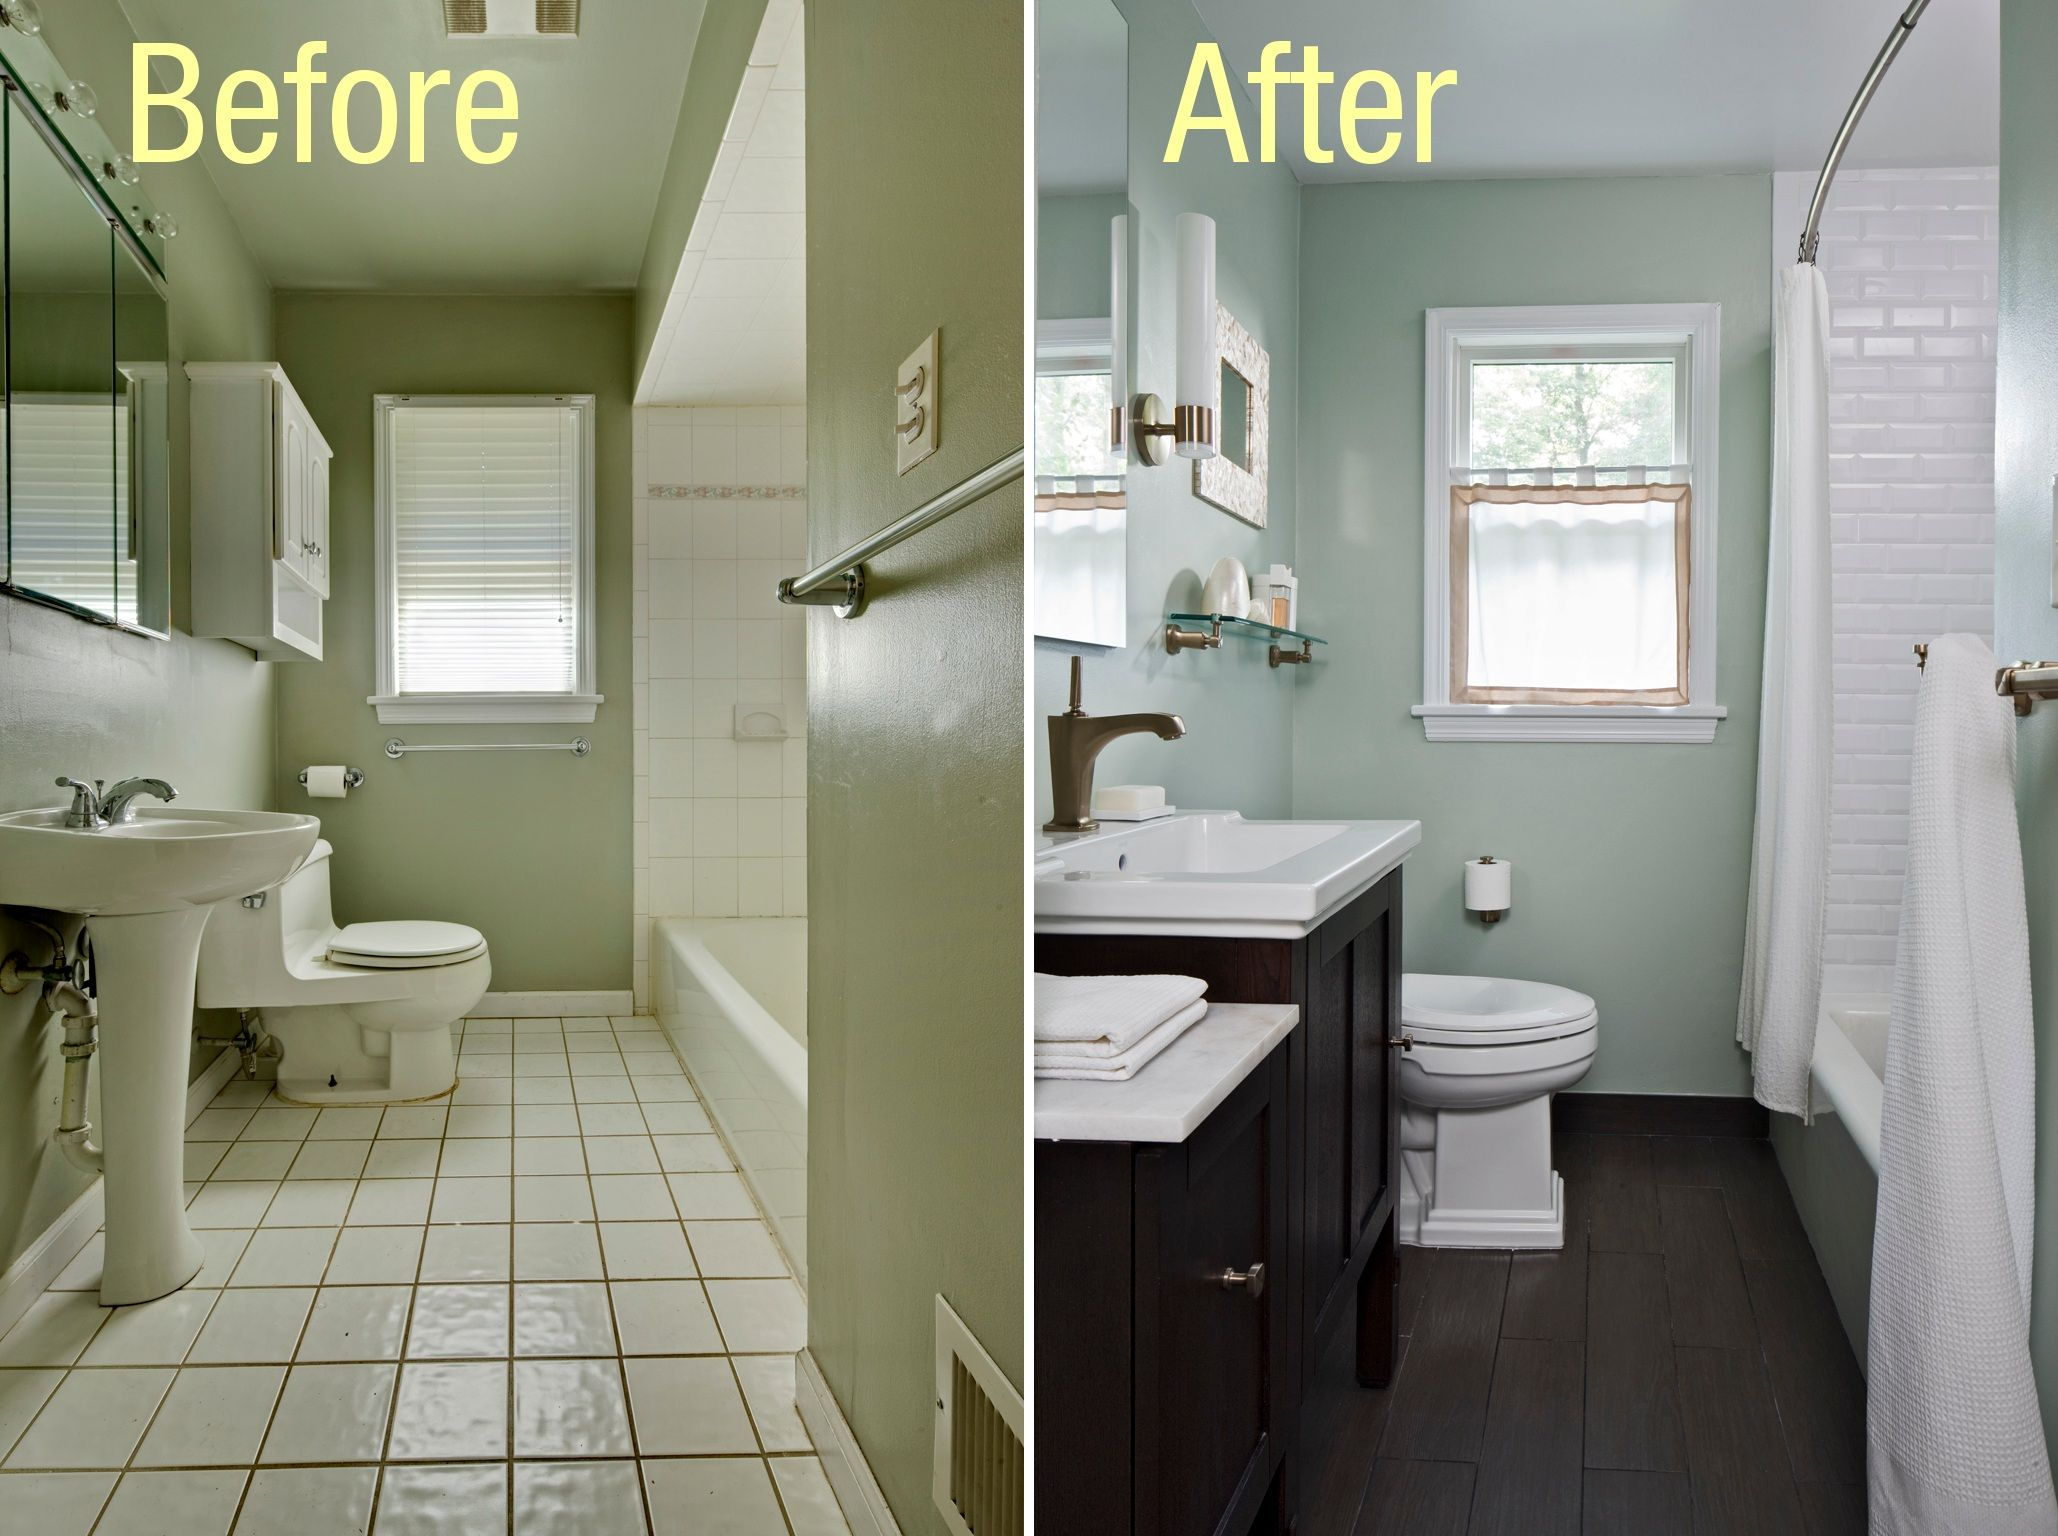 Cheap bathroom remodel before and after - Bathroom Design Bathroom Vanities Before And After Photos Of Bathroom Renovations From Old Simple To New Elegant Trend One Bathroom Makeovers On A Budget